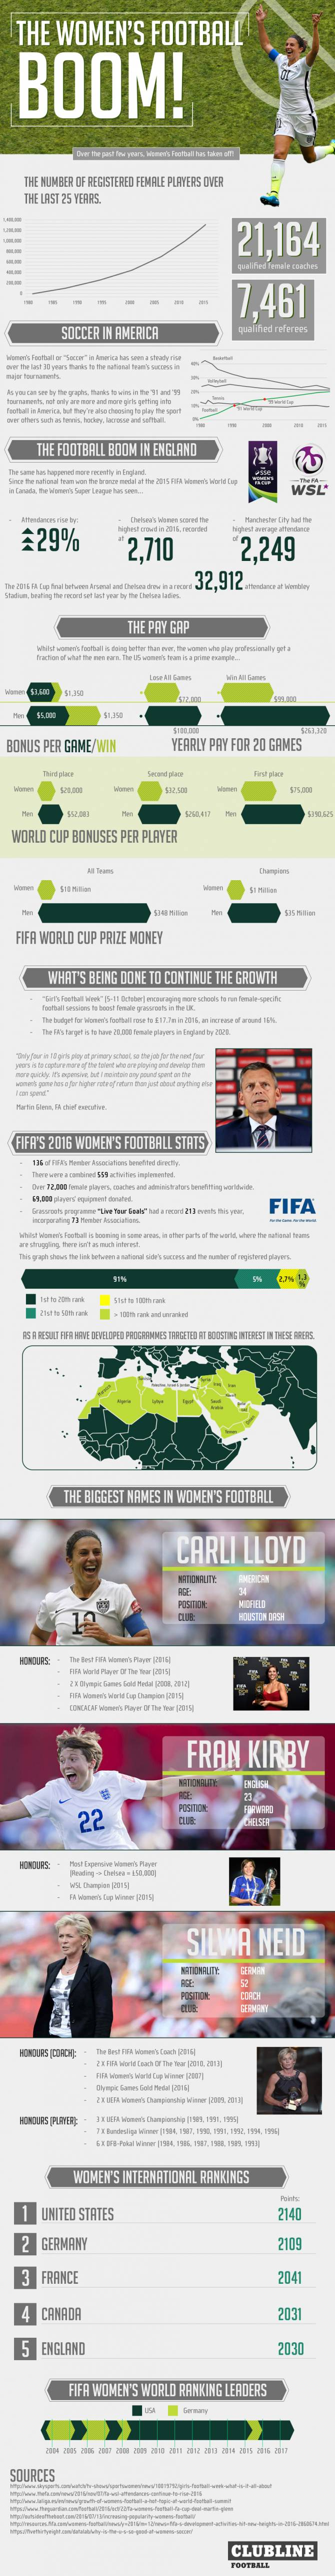 The Women's Football BOOM